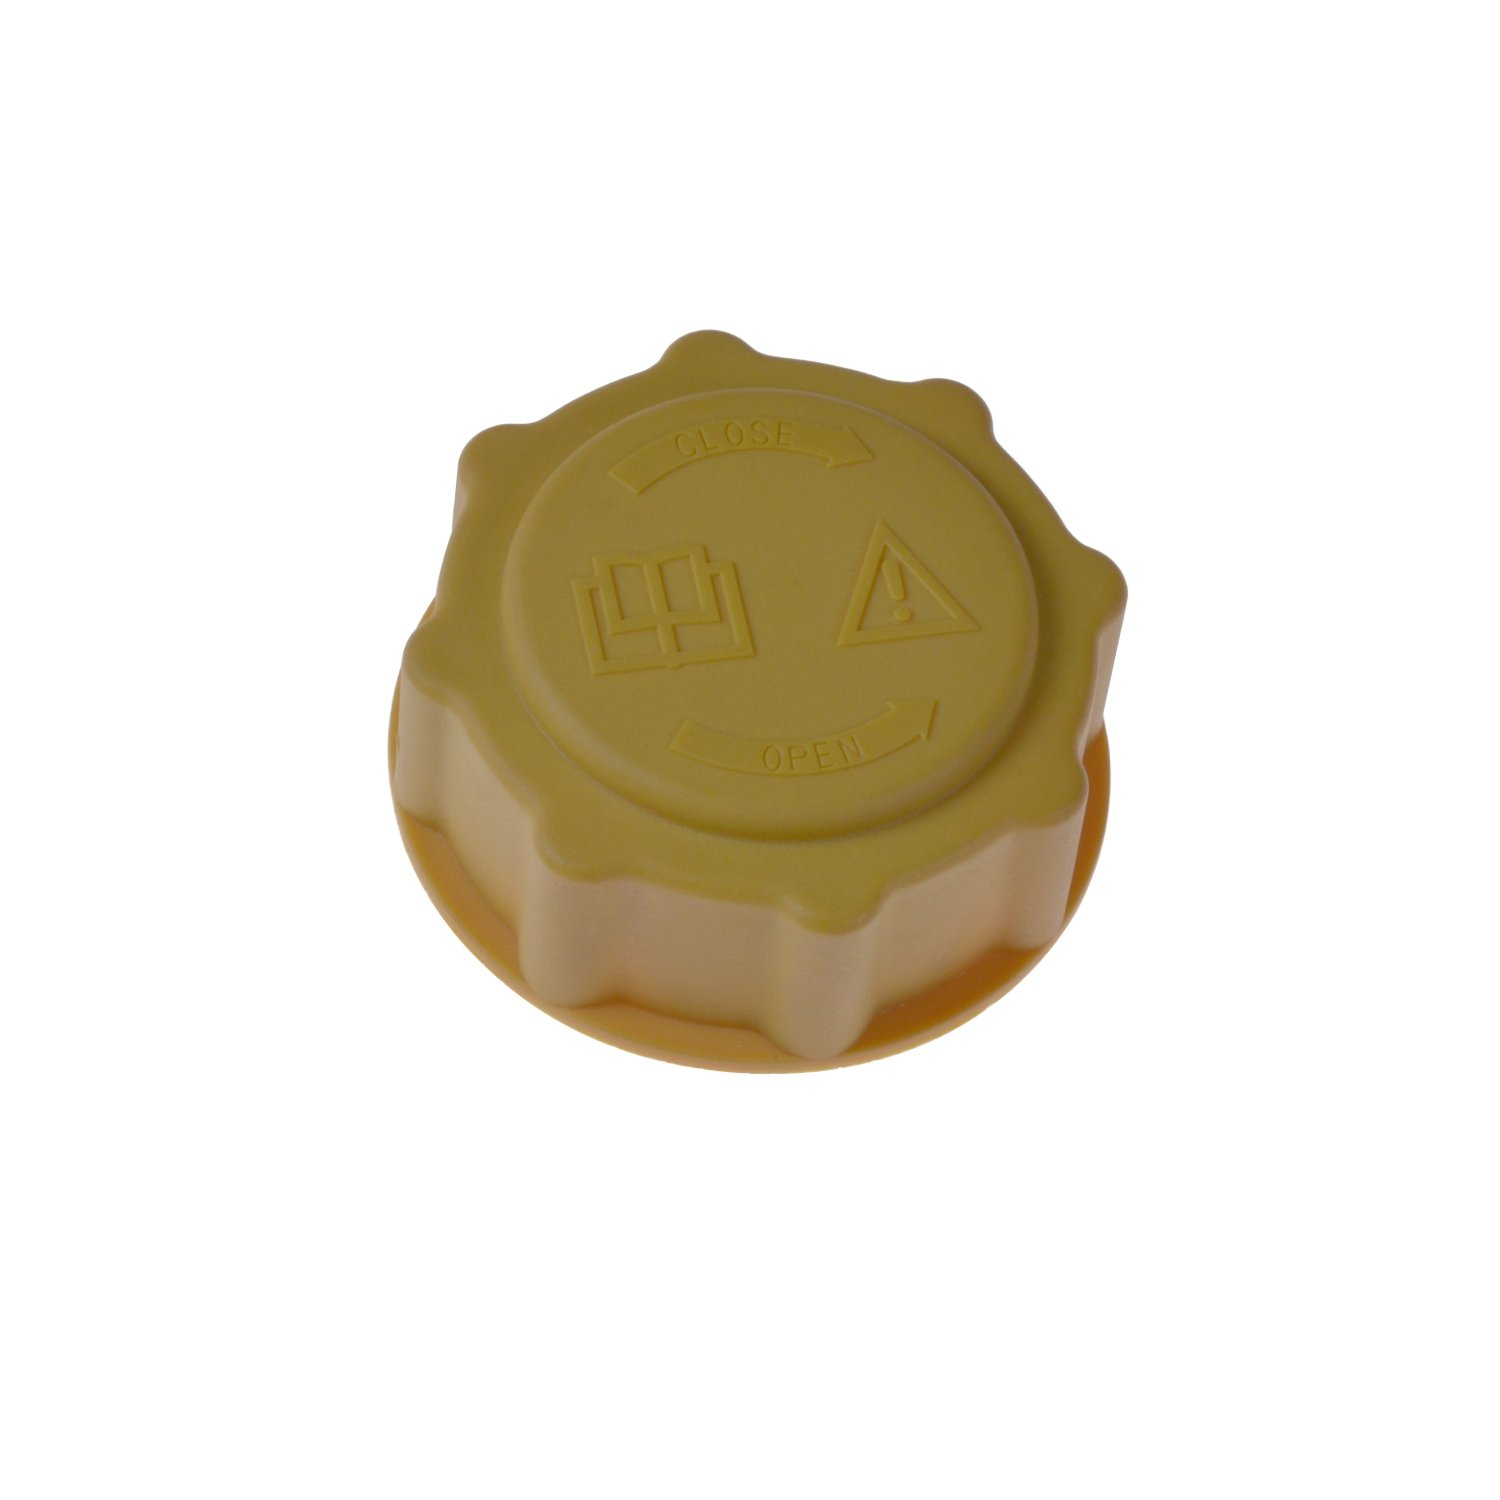 Blue Print ADG09901 radiator cap for expansion tank  - Pack of 1 Bilstein Group